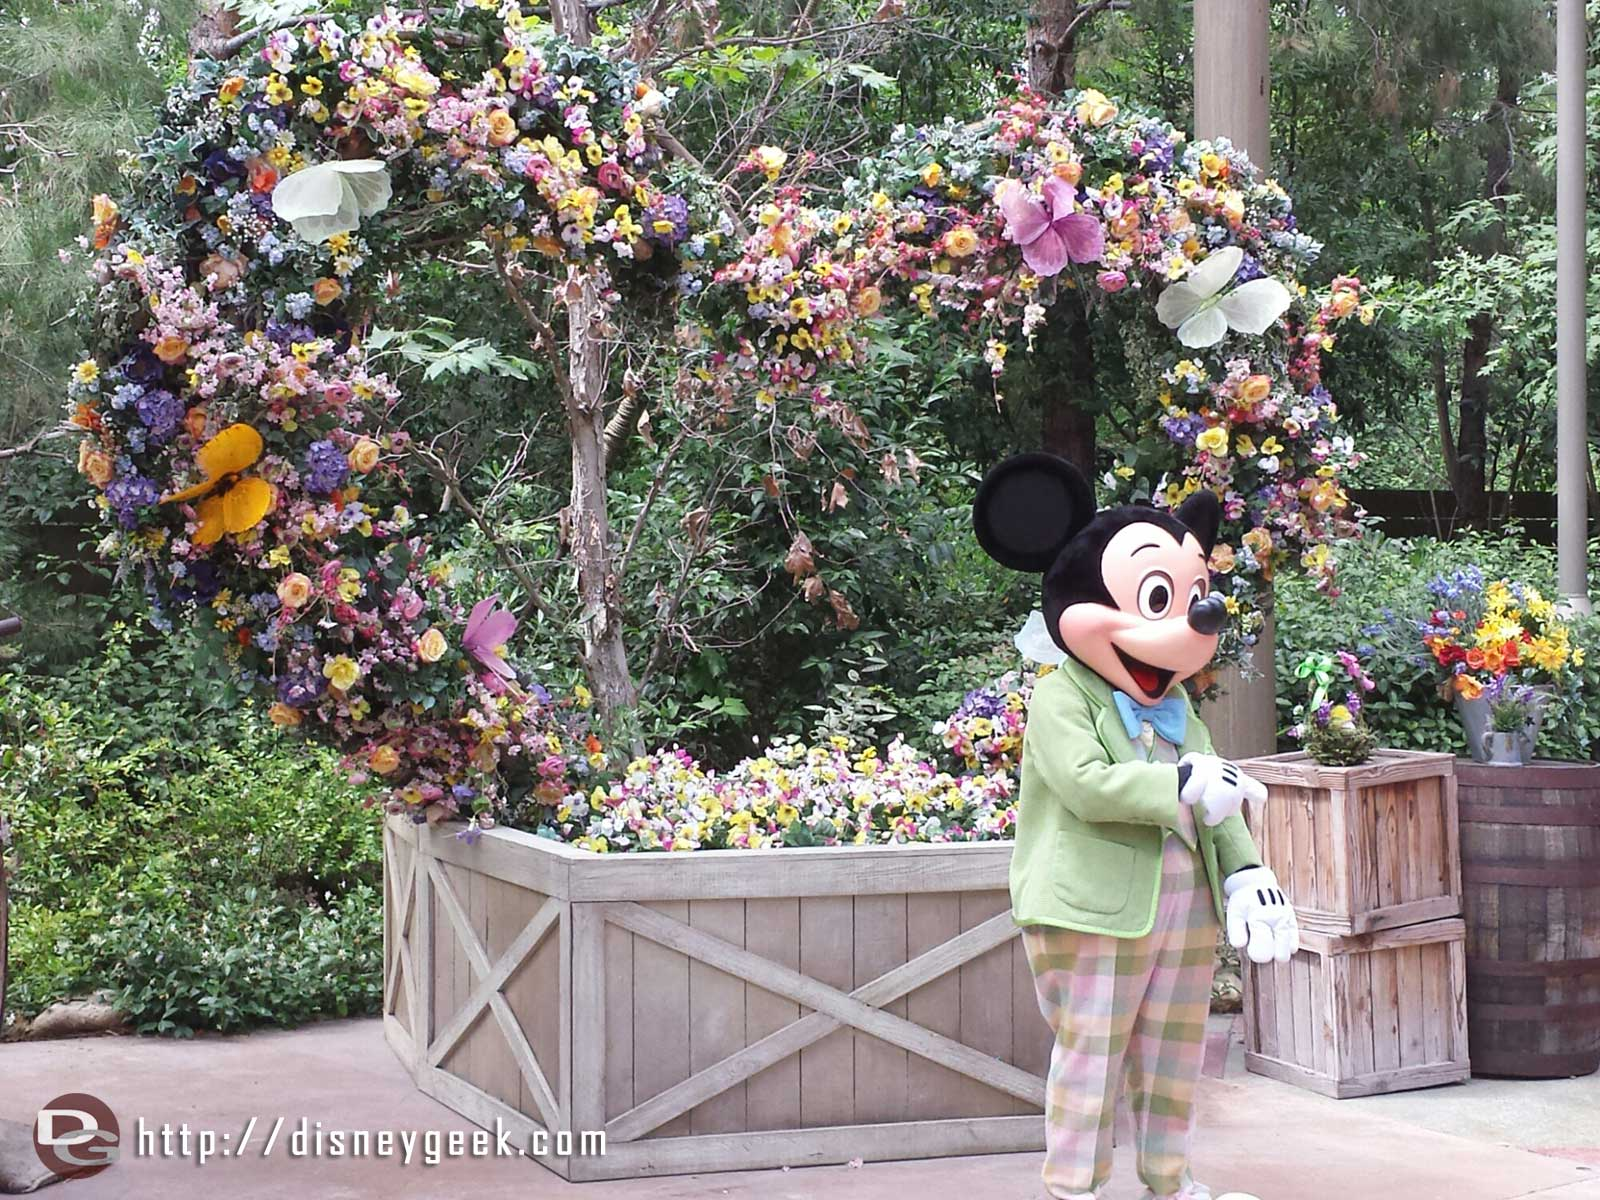 Mickey is in his springtime outfit at the Big Thunder Ranch Jamboree